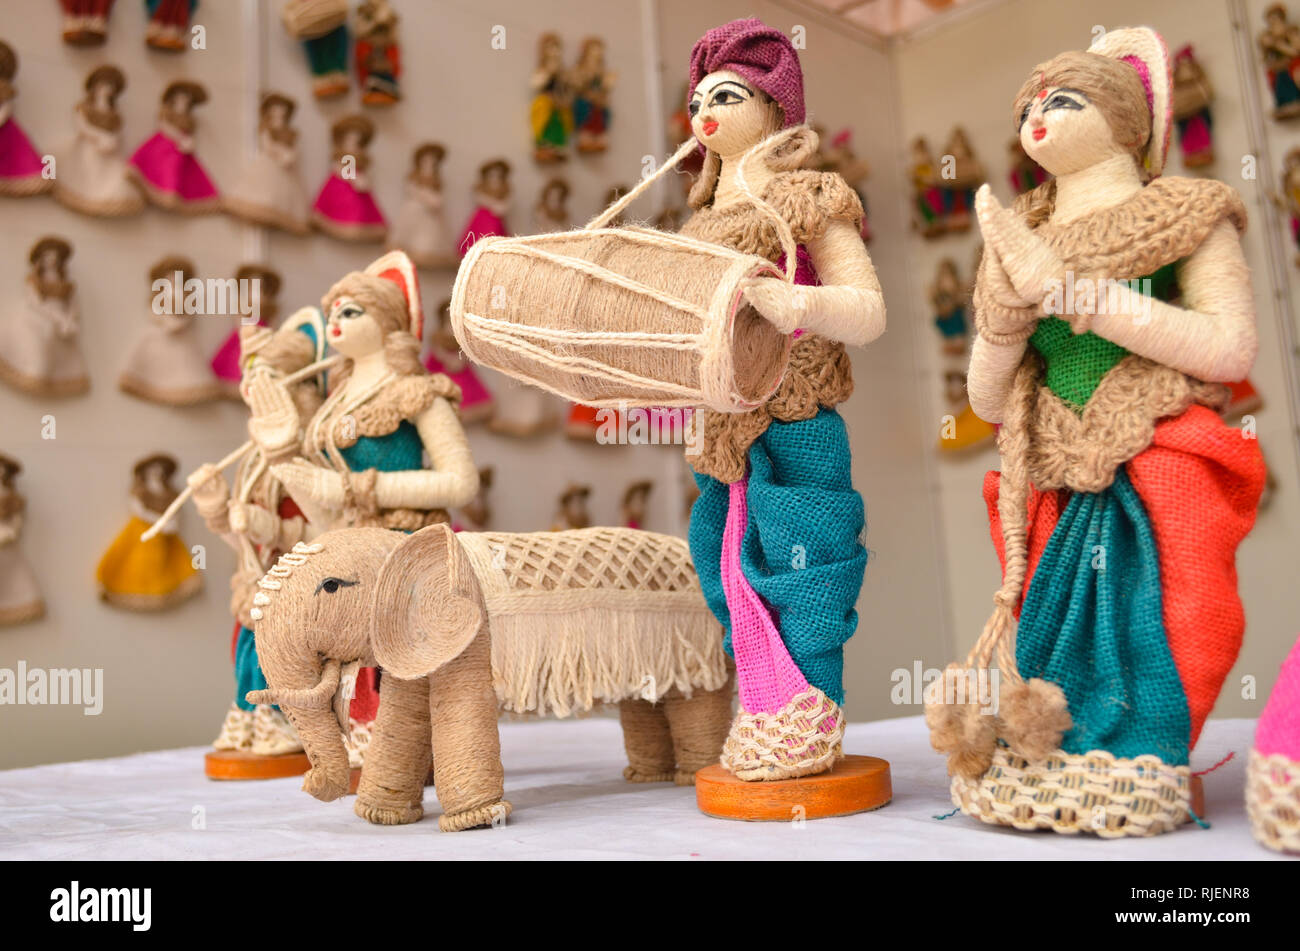 25219eef1da Puppets made out of Jute on display for sale at a handicraft exhibition at  Delhi Haat